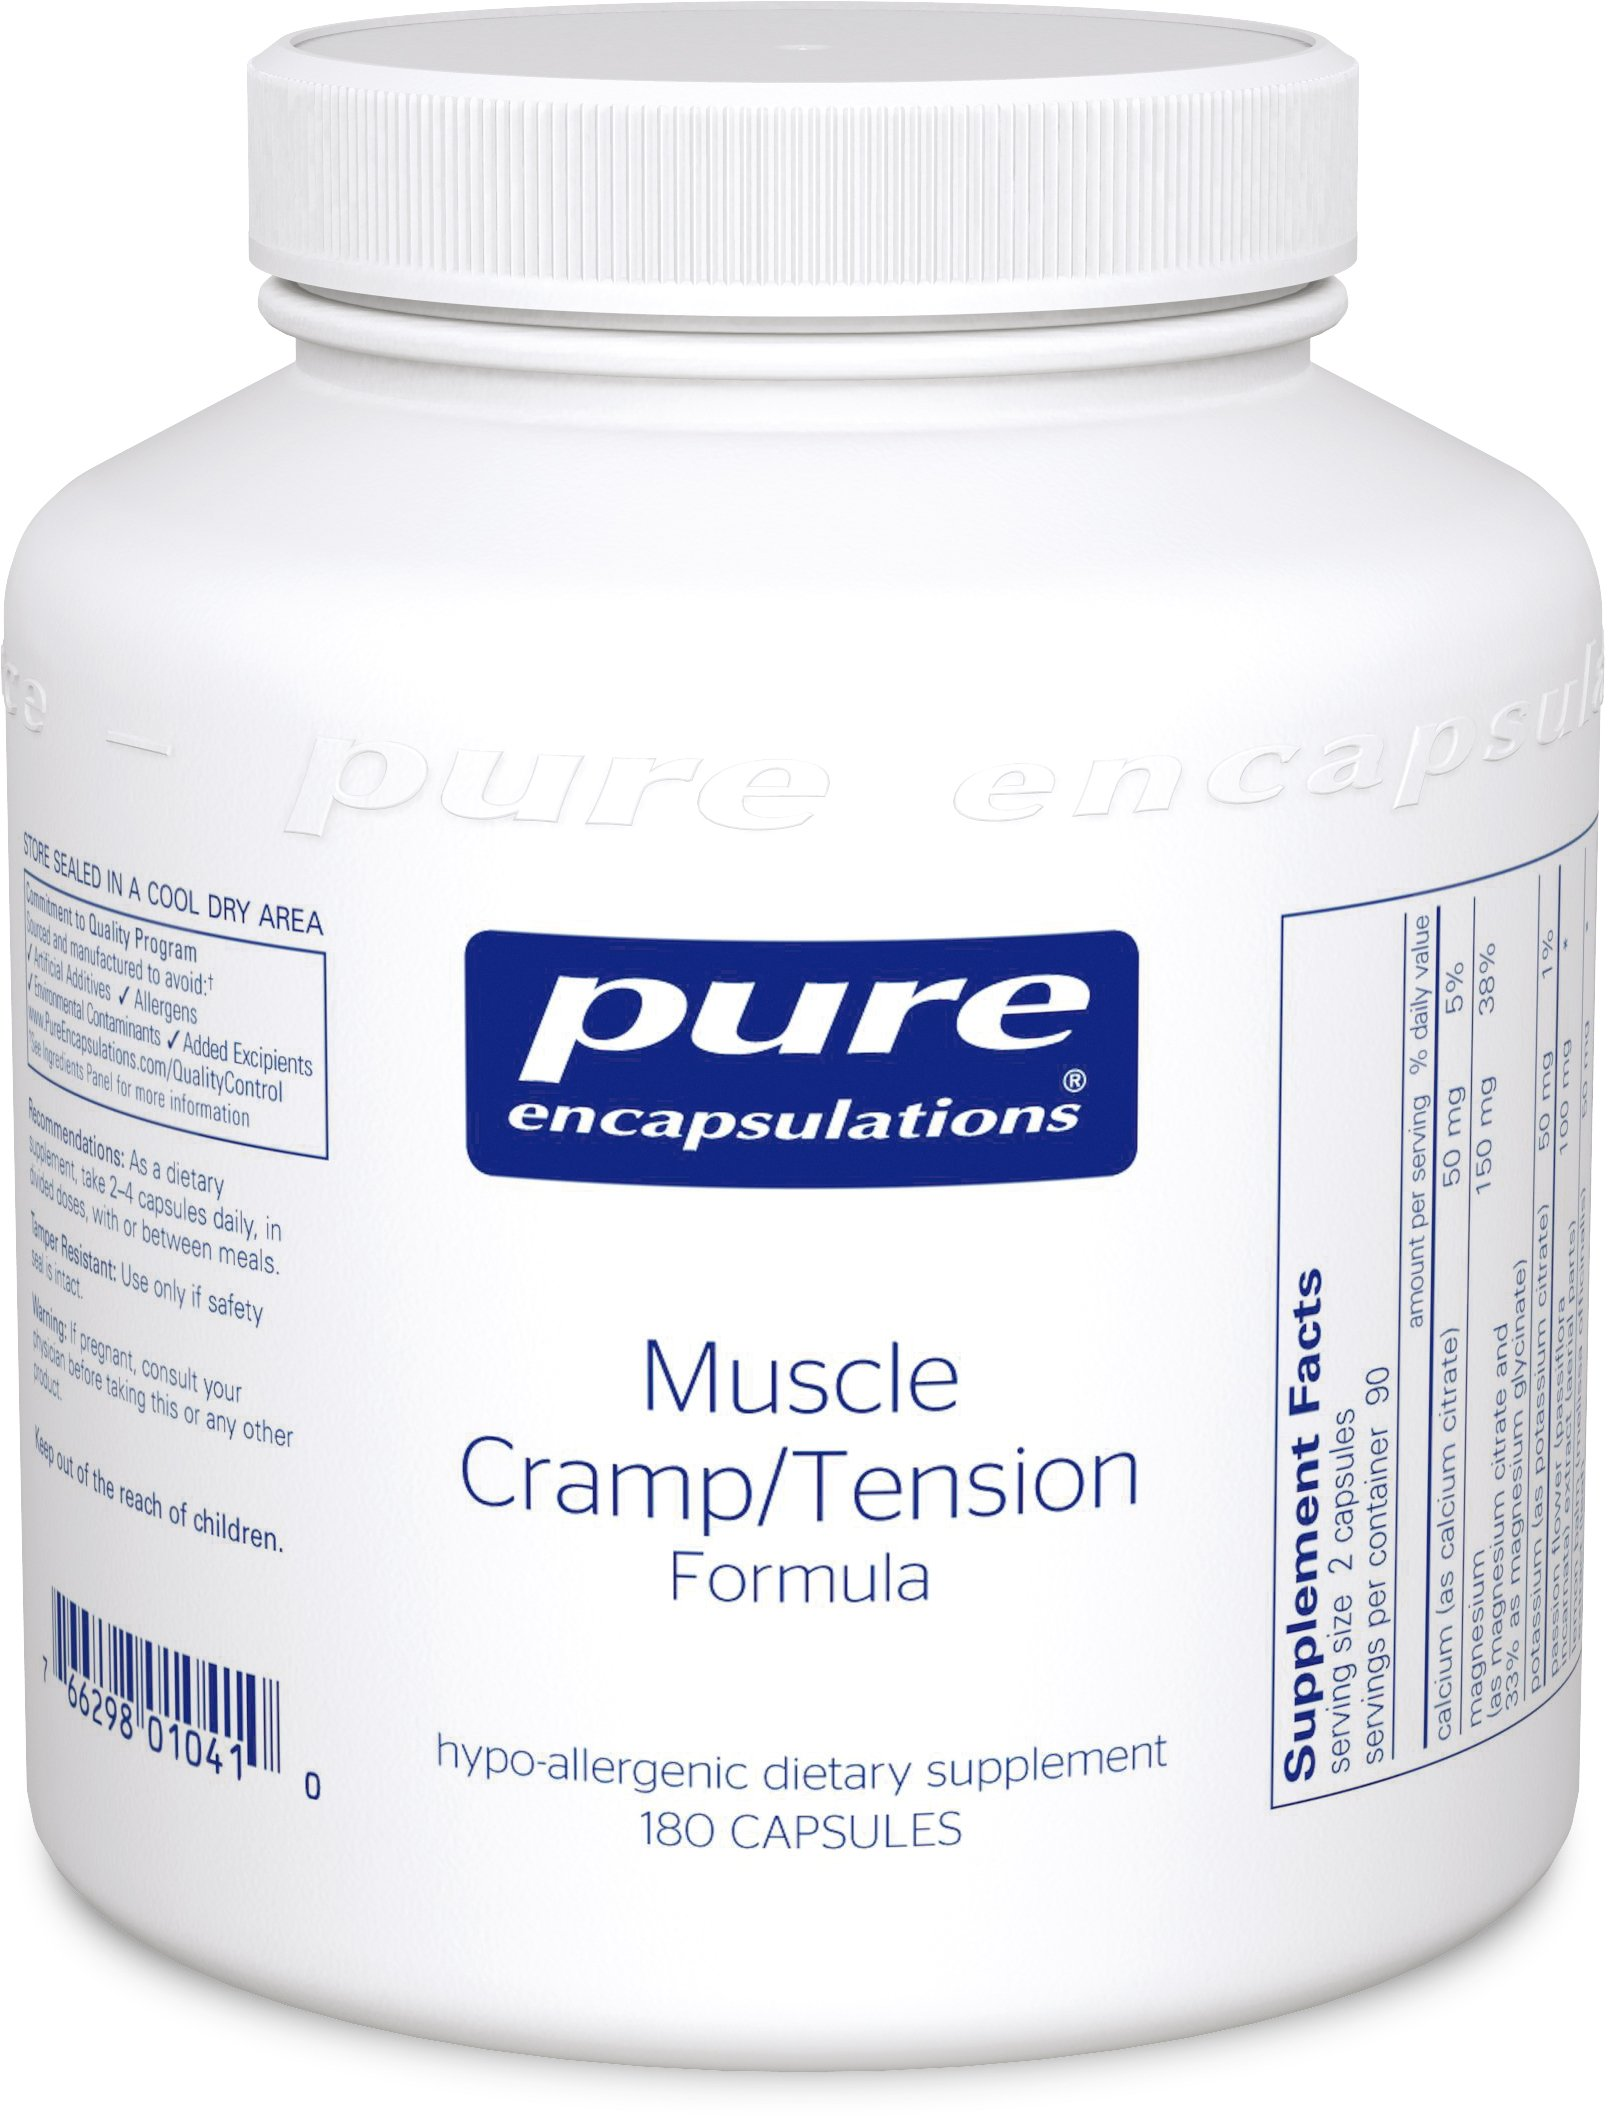 Pure Encapsulations - Muscle Cramp/Tension Formula - Hypoallergenic Supplement to Reduce Occasional Muscle Cramps/Tension and Promote Relaxation* - 180 Capsules by Pure Encapsulations